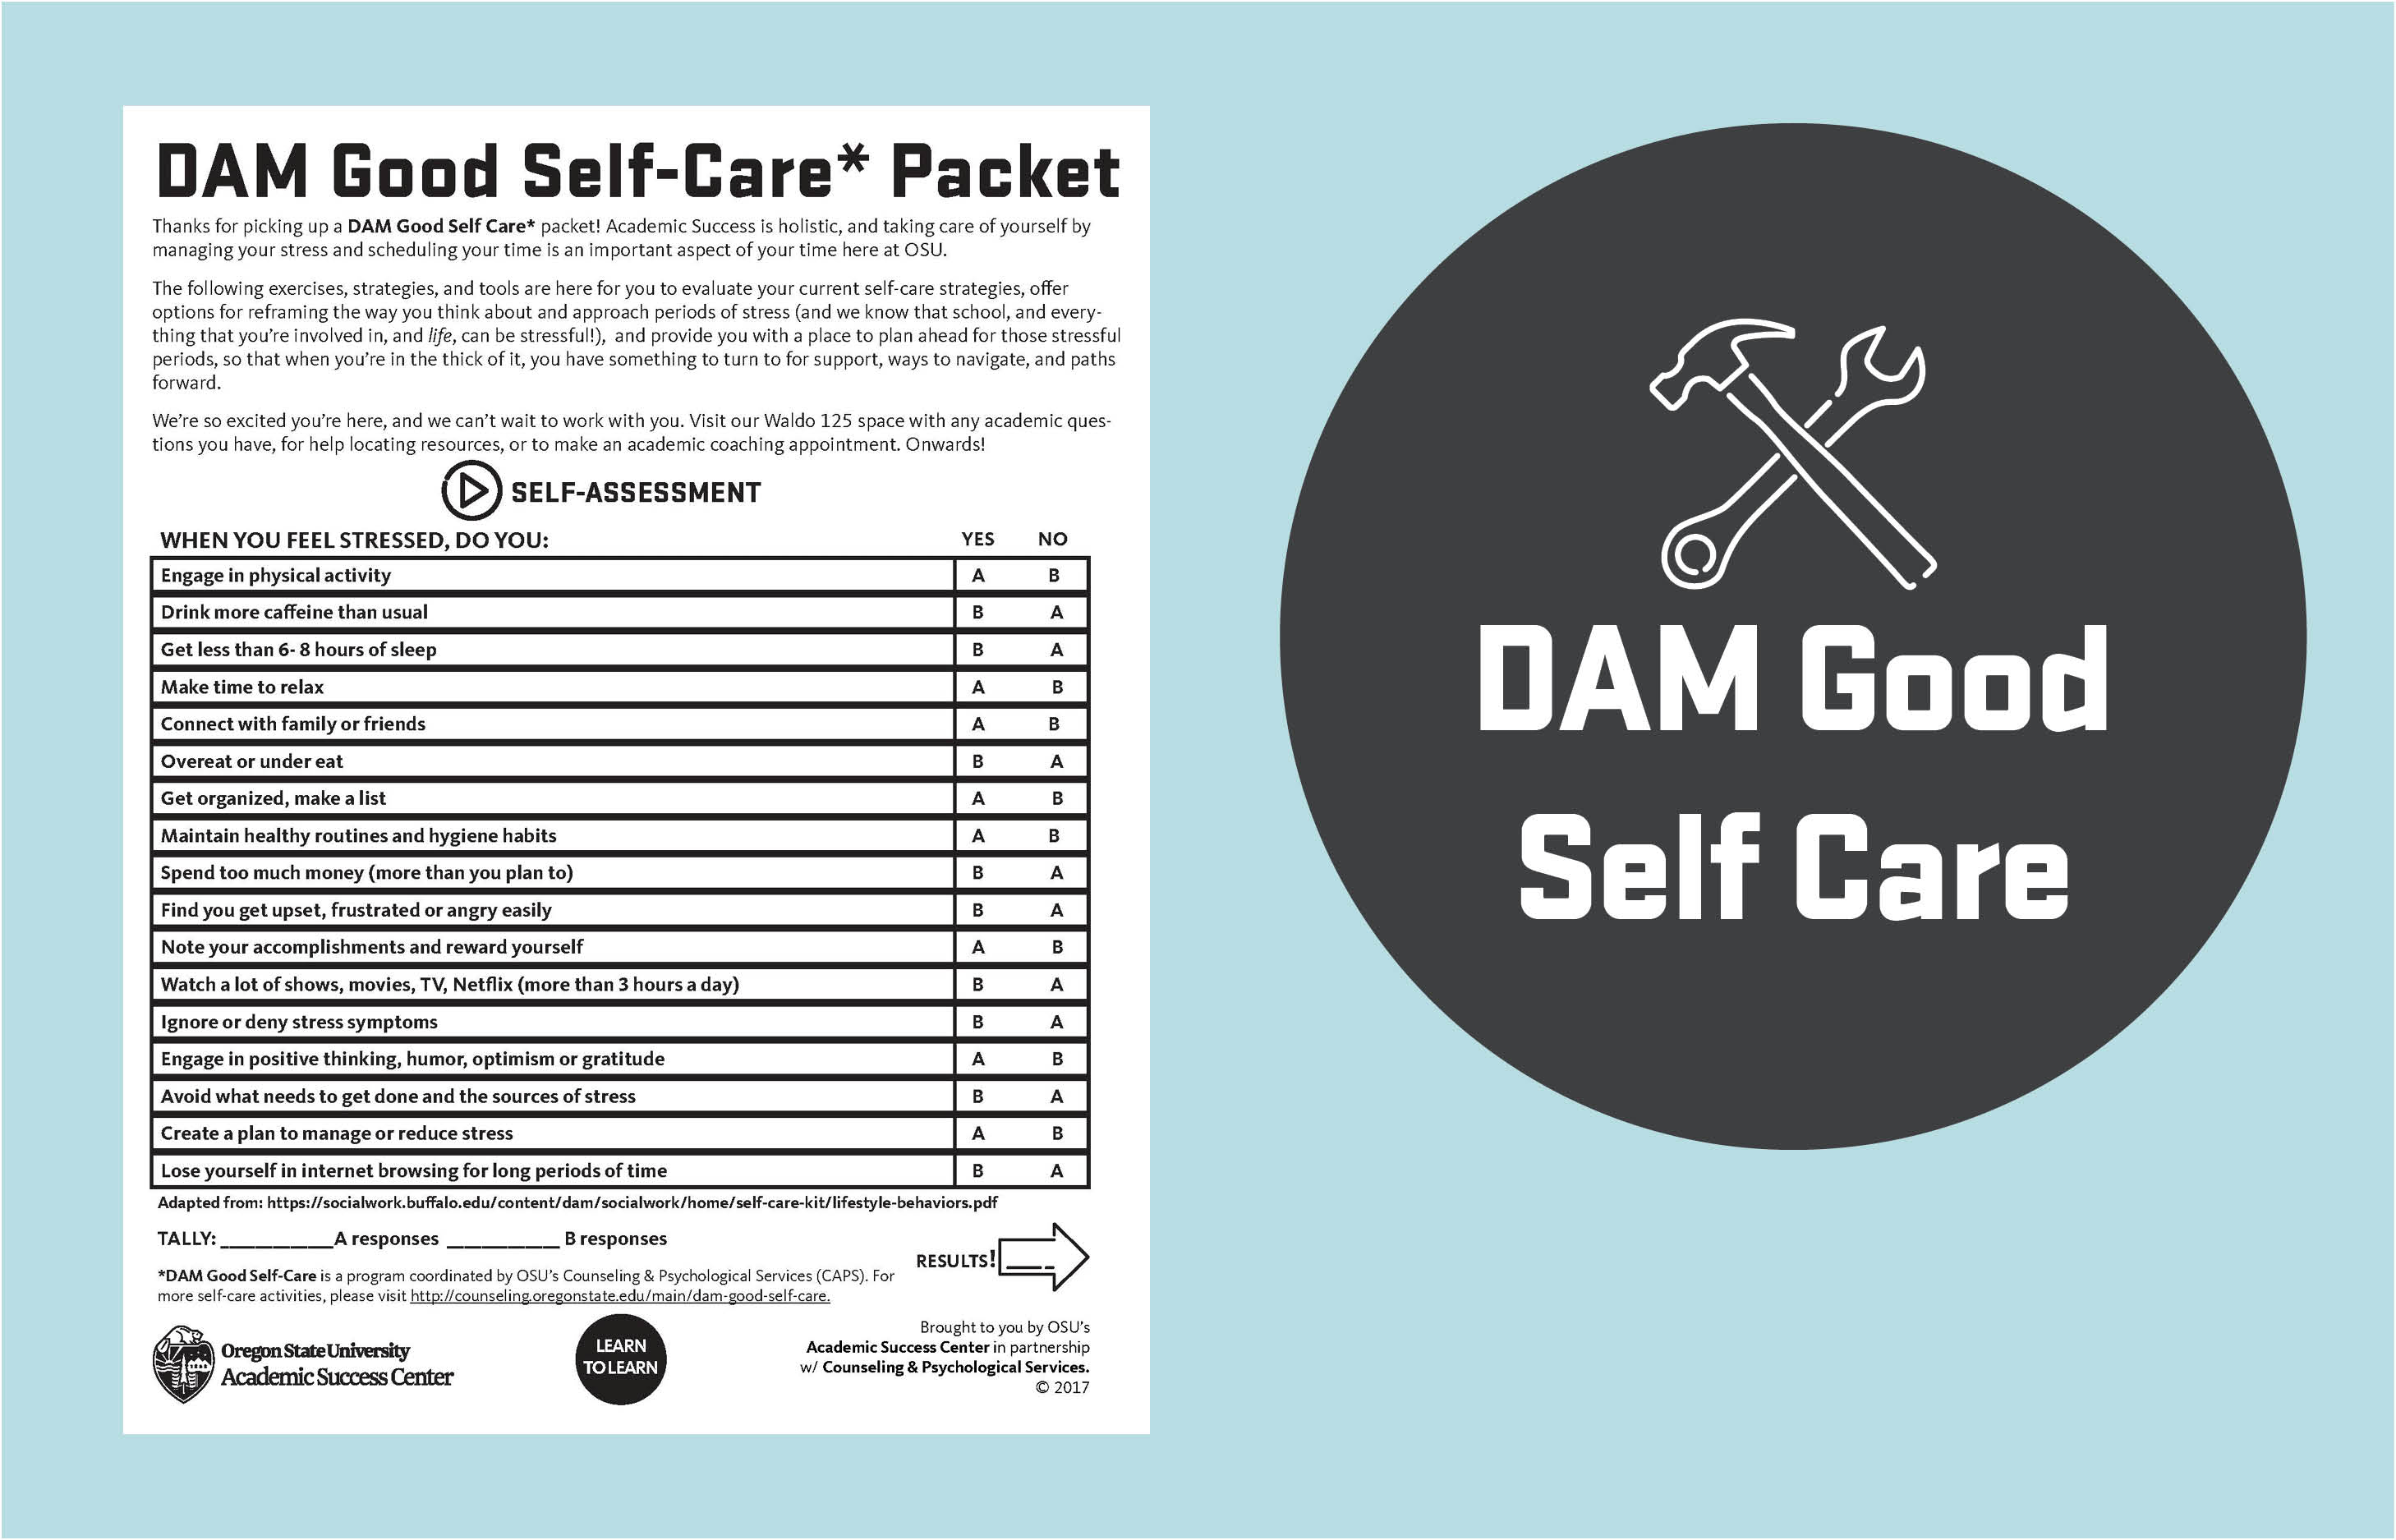 DAM Good Self Care Packet